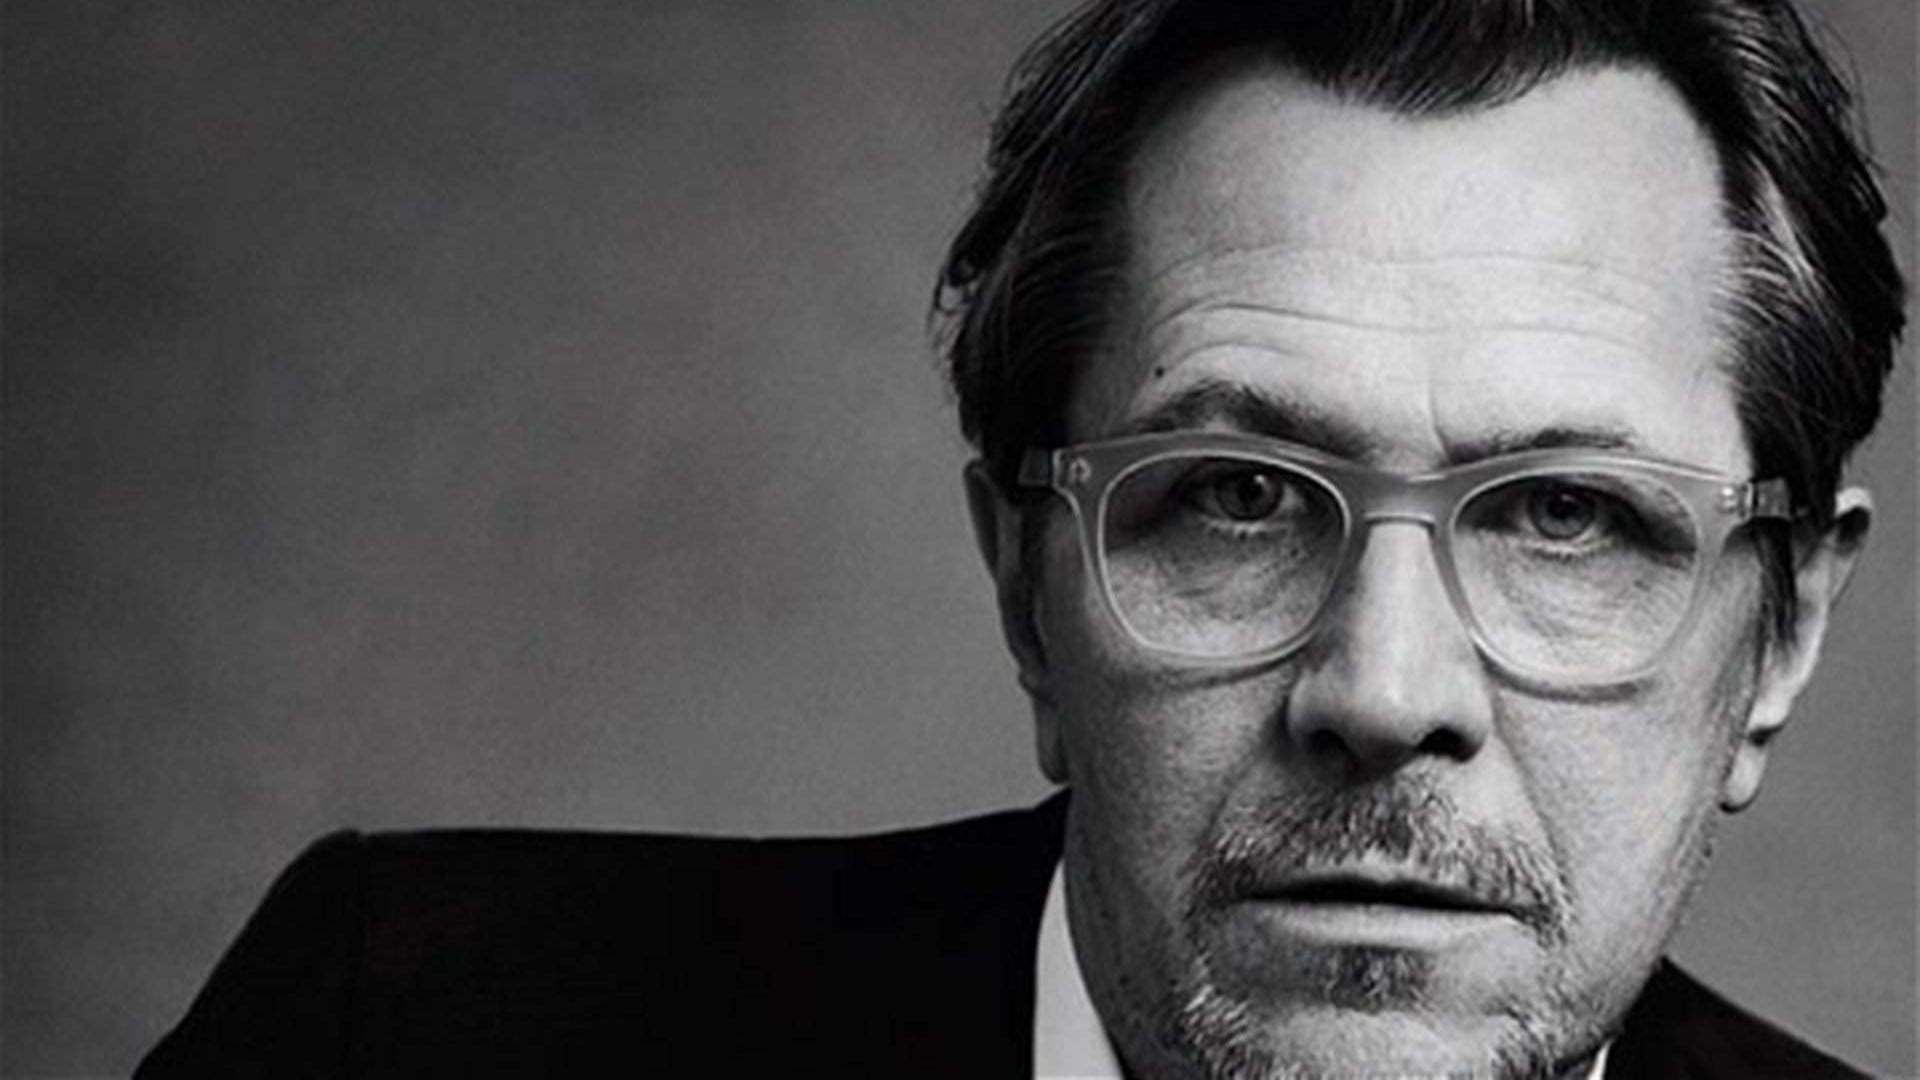 Gary Oldman Best Images And Full HD Wallpapers   1080p 1920x1080